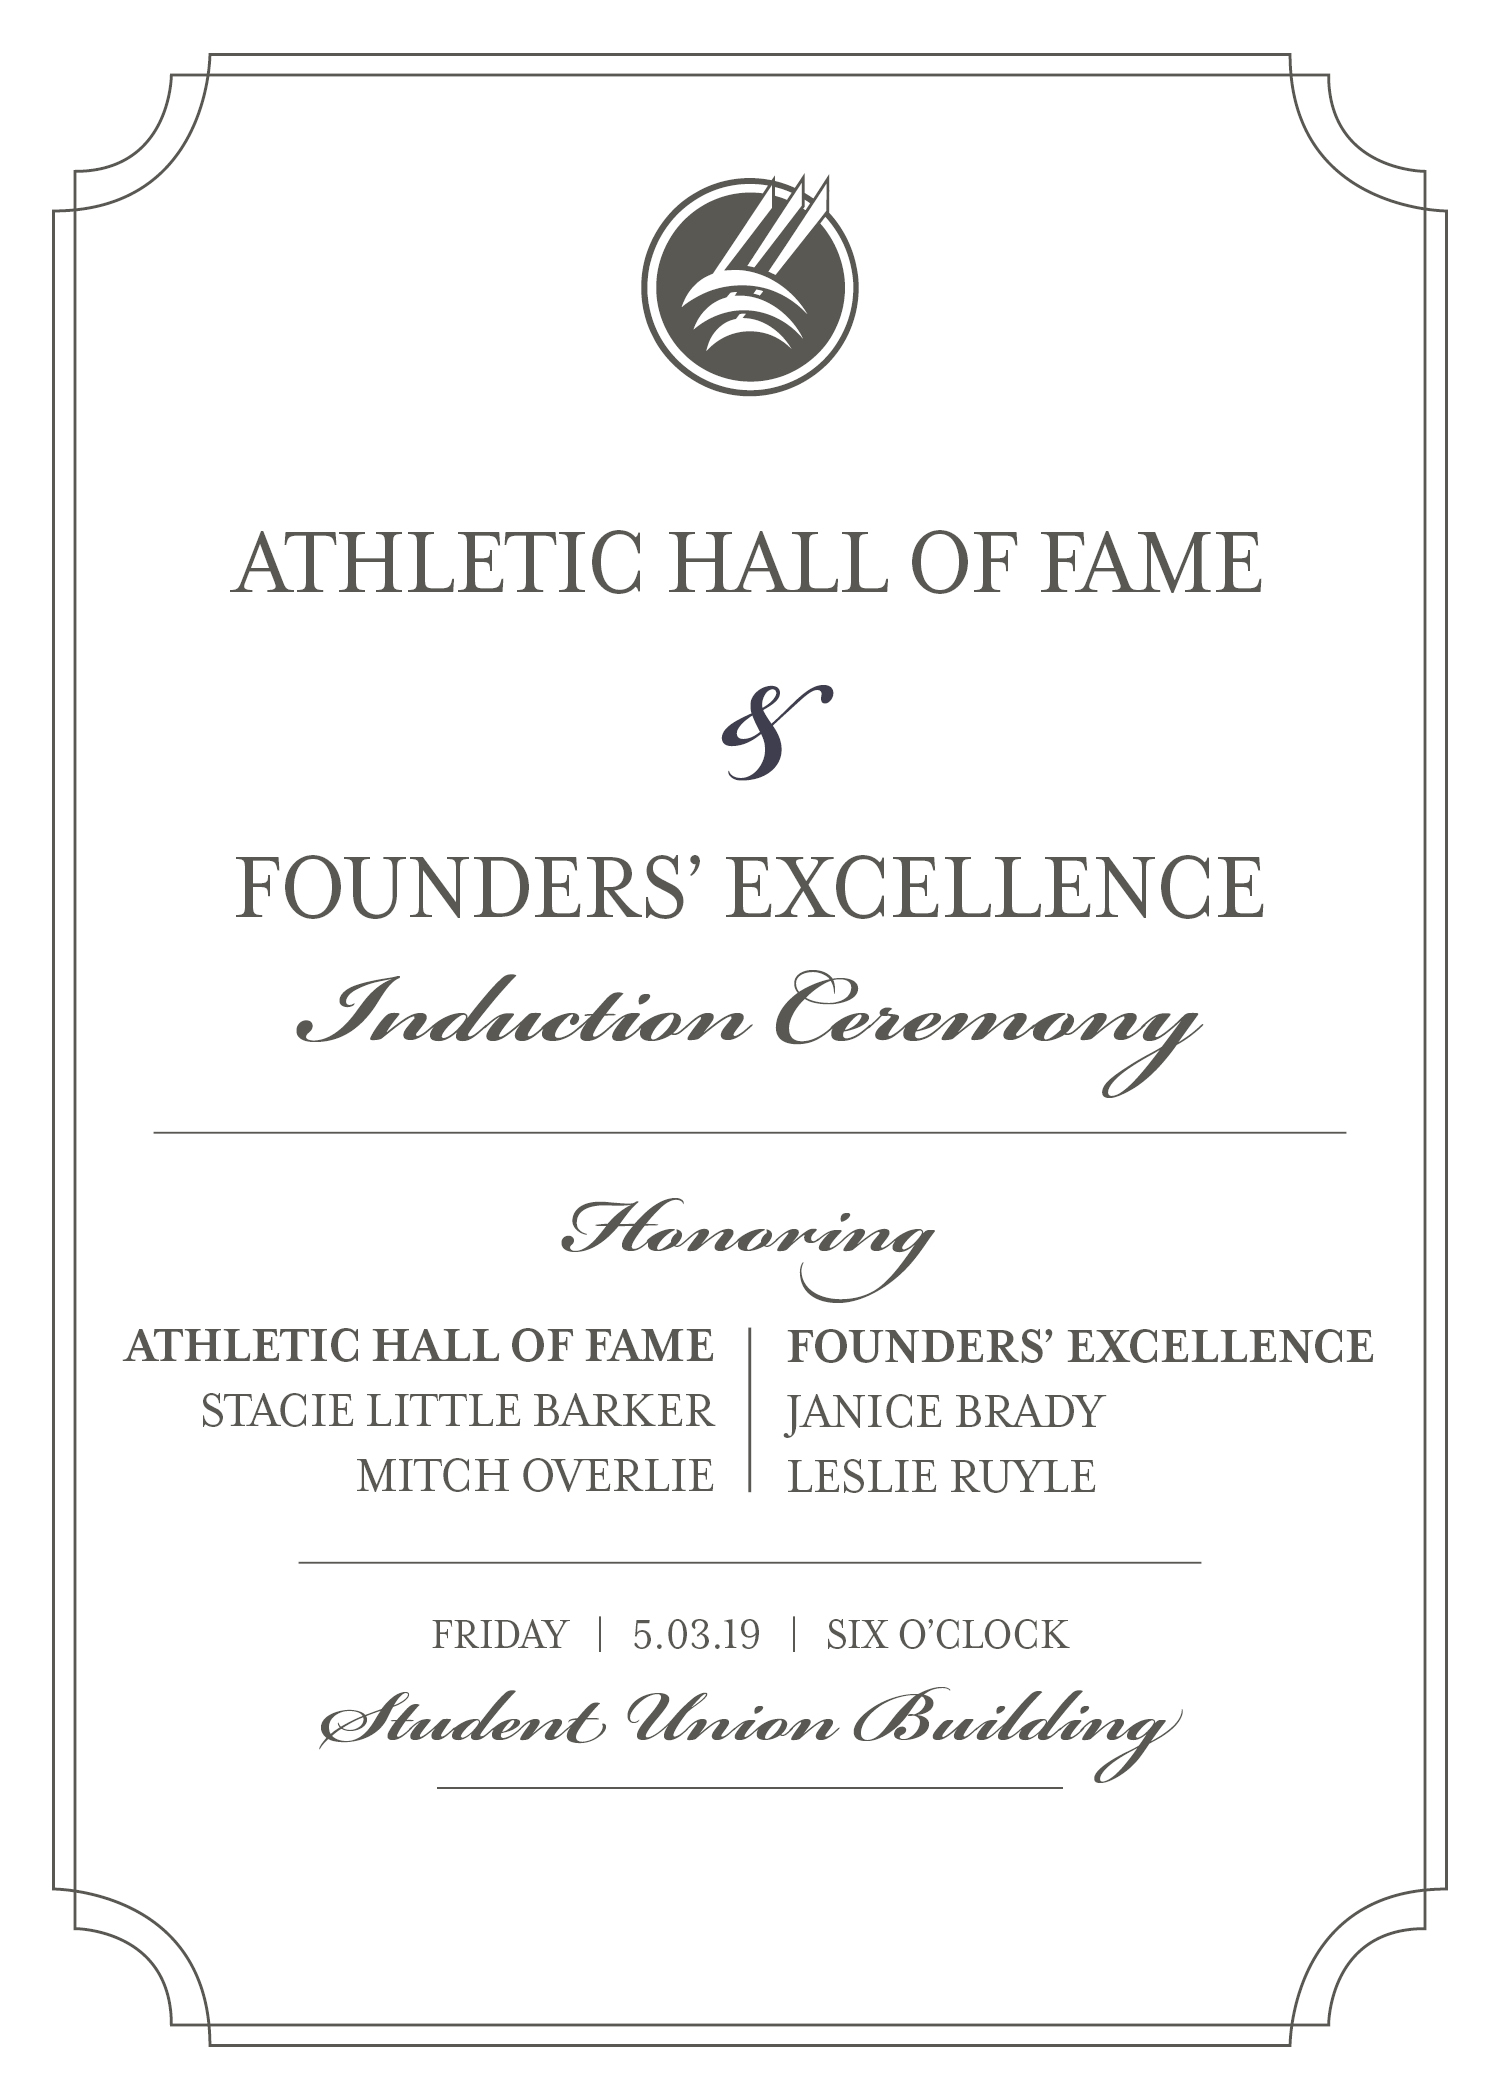 Founders' Excellence and Athletic Hall of Fame